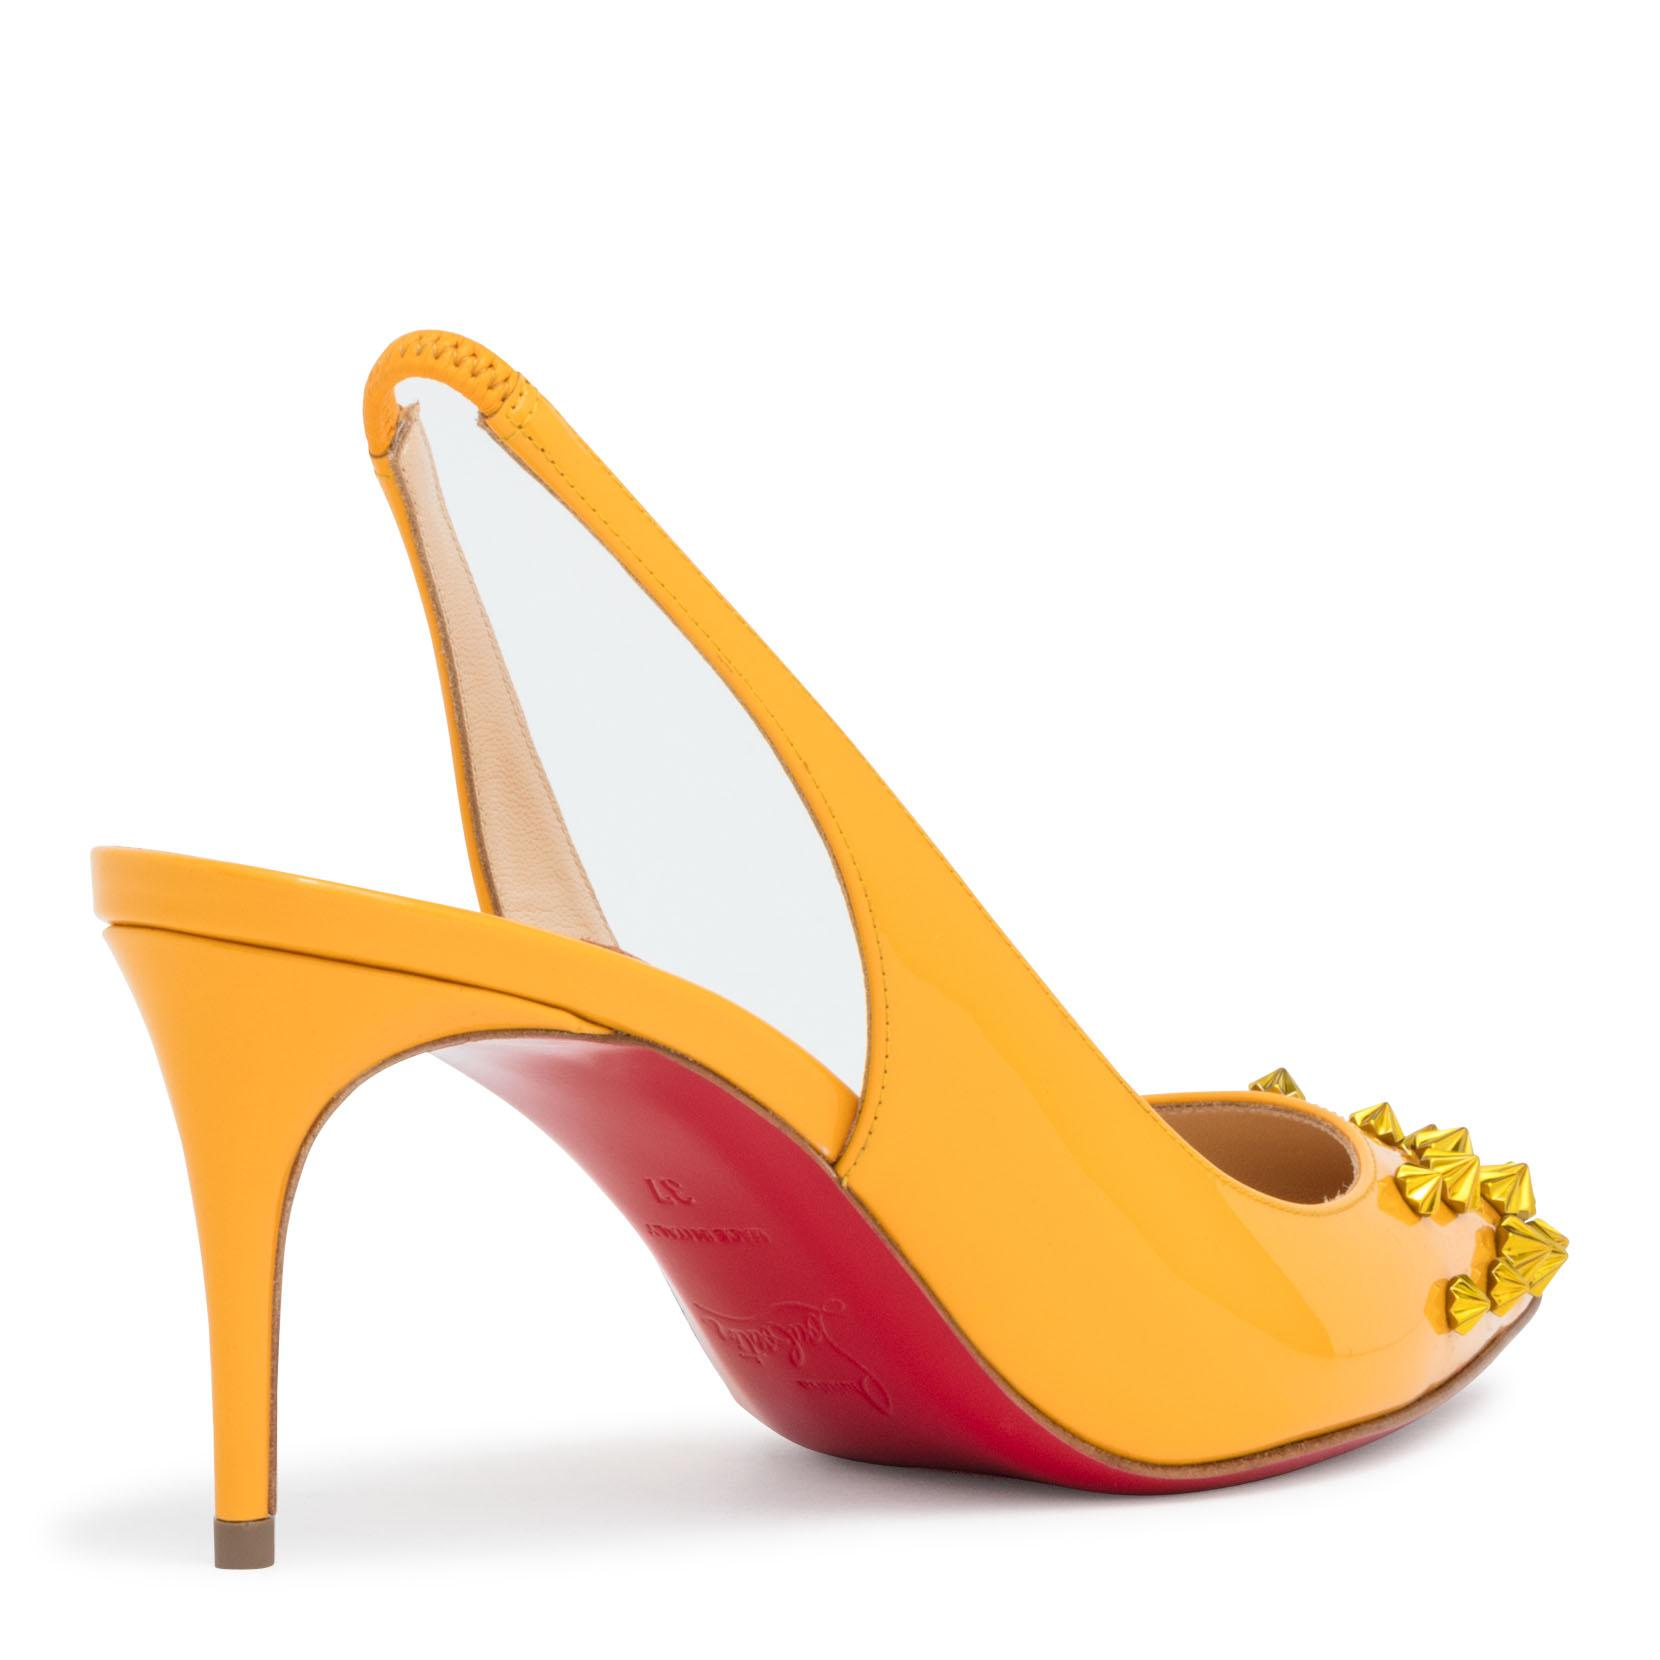 Drama 70 Yellow Patent Leather Slingback Stud Pumps Christian Louboutin yH9oaZ